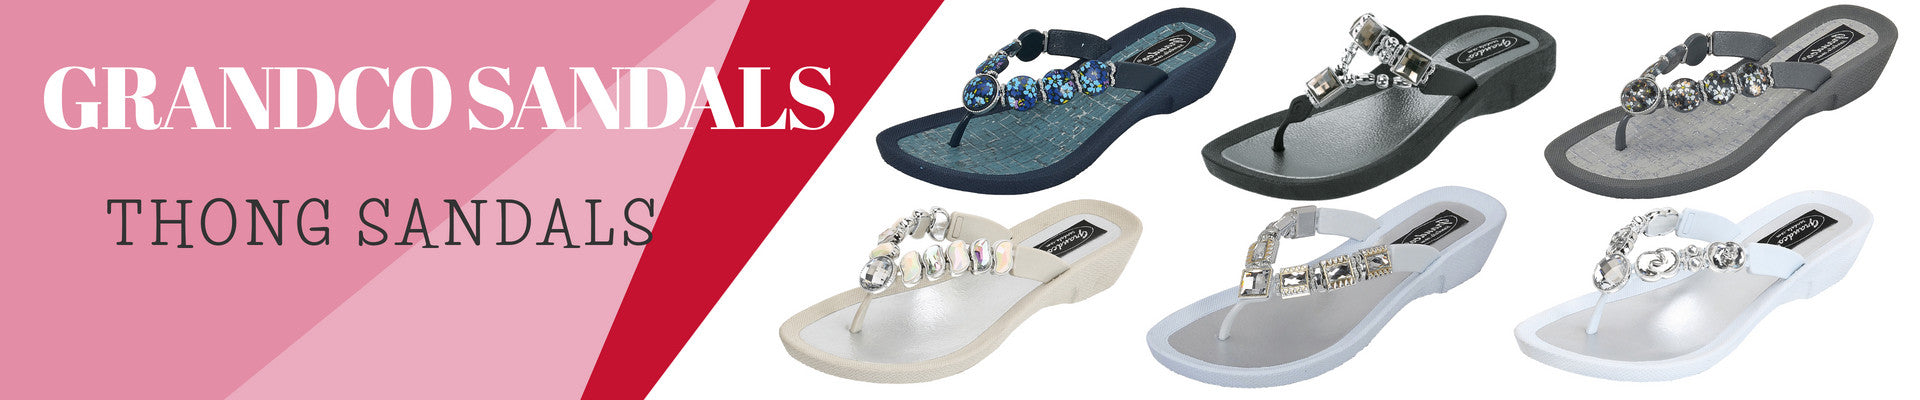 Grandco Sandals Thongs for Women. Shop The Accessory Barn!